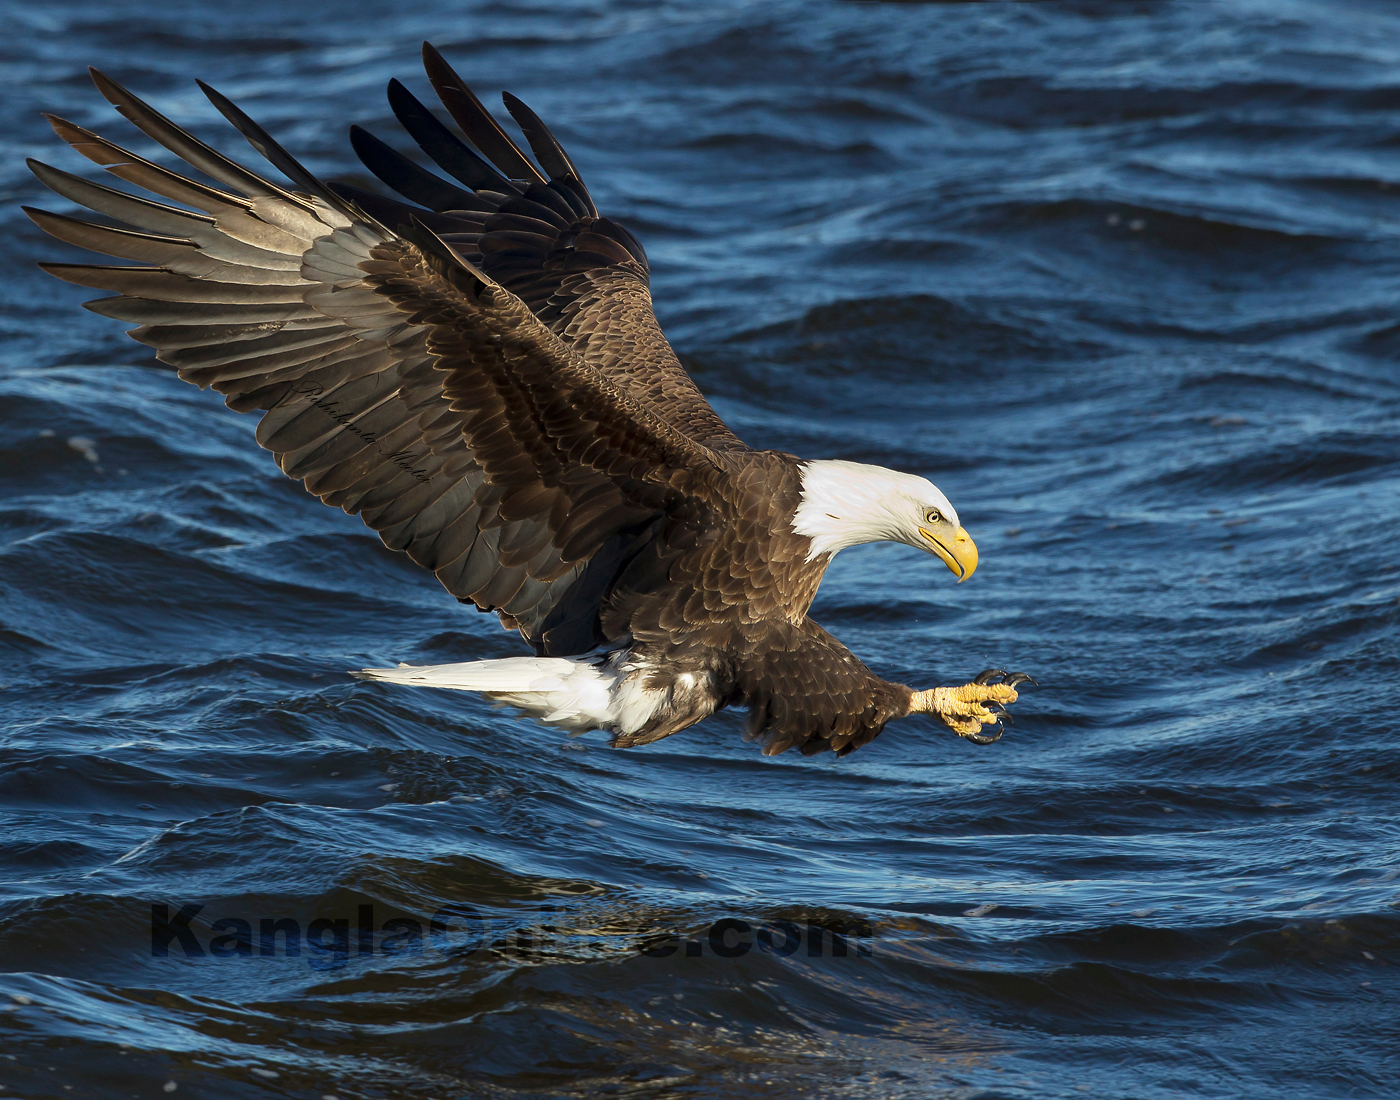 Bald Eagle Fishing Pictures at Lock and Dam No. 14 is located near LeClaire, Iowa on the Upper Mississippi River , United States